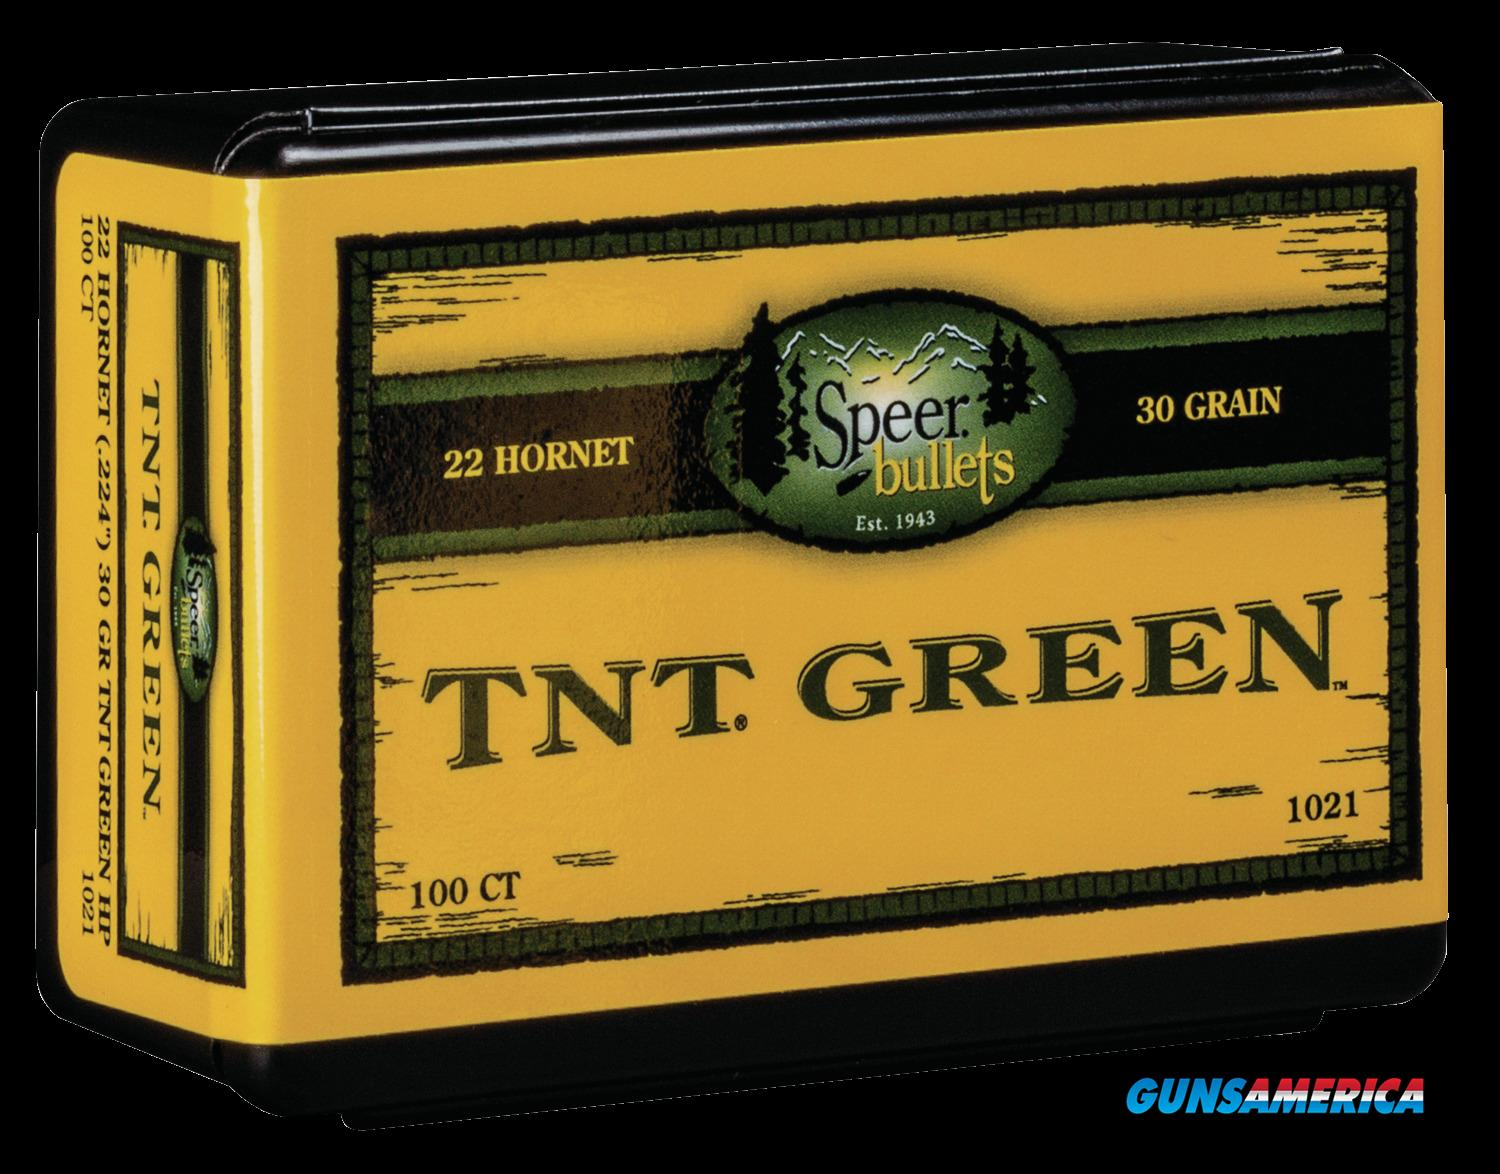 Speer Bullets Tnt Green, Speer 1021 Bull .224  30 Tntgrn    100  Guns > Pistols > 1911 Pistol Copies (non-Colt)